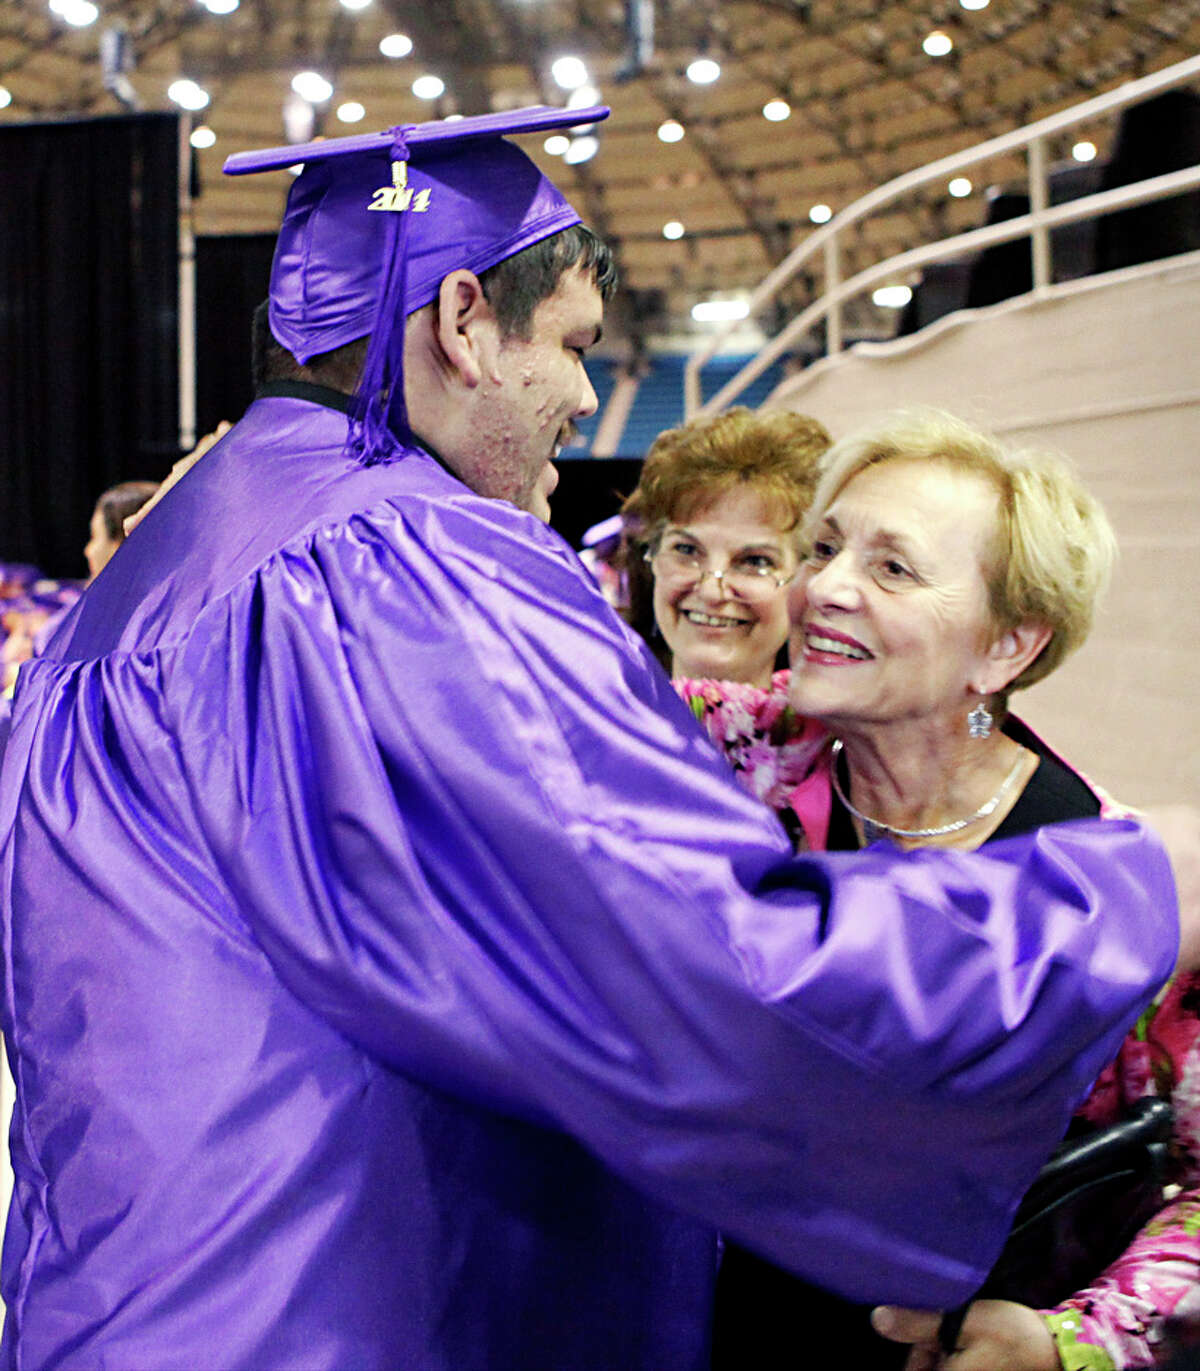 Dylan Barrera gets a hug from Northwest Vista College president Jackie Claunch before graduation begins for Northwest Vista College Wednesday May 14, 2014. Barrera graduated with his Associate of Arts degree after surviving a severe type of Leukemia and was acknowledged by Claunch during the ceremony. Barrera struggled with his classes after starting in 2010 while also undergoing chemotherapy. While going through chemo and classes Northwest Vista College organized a blood drive for Barrera.